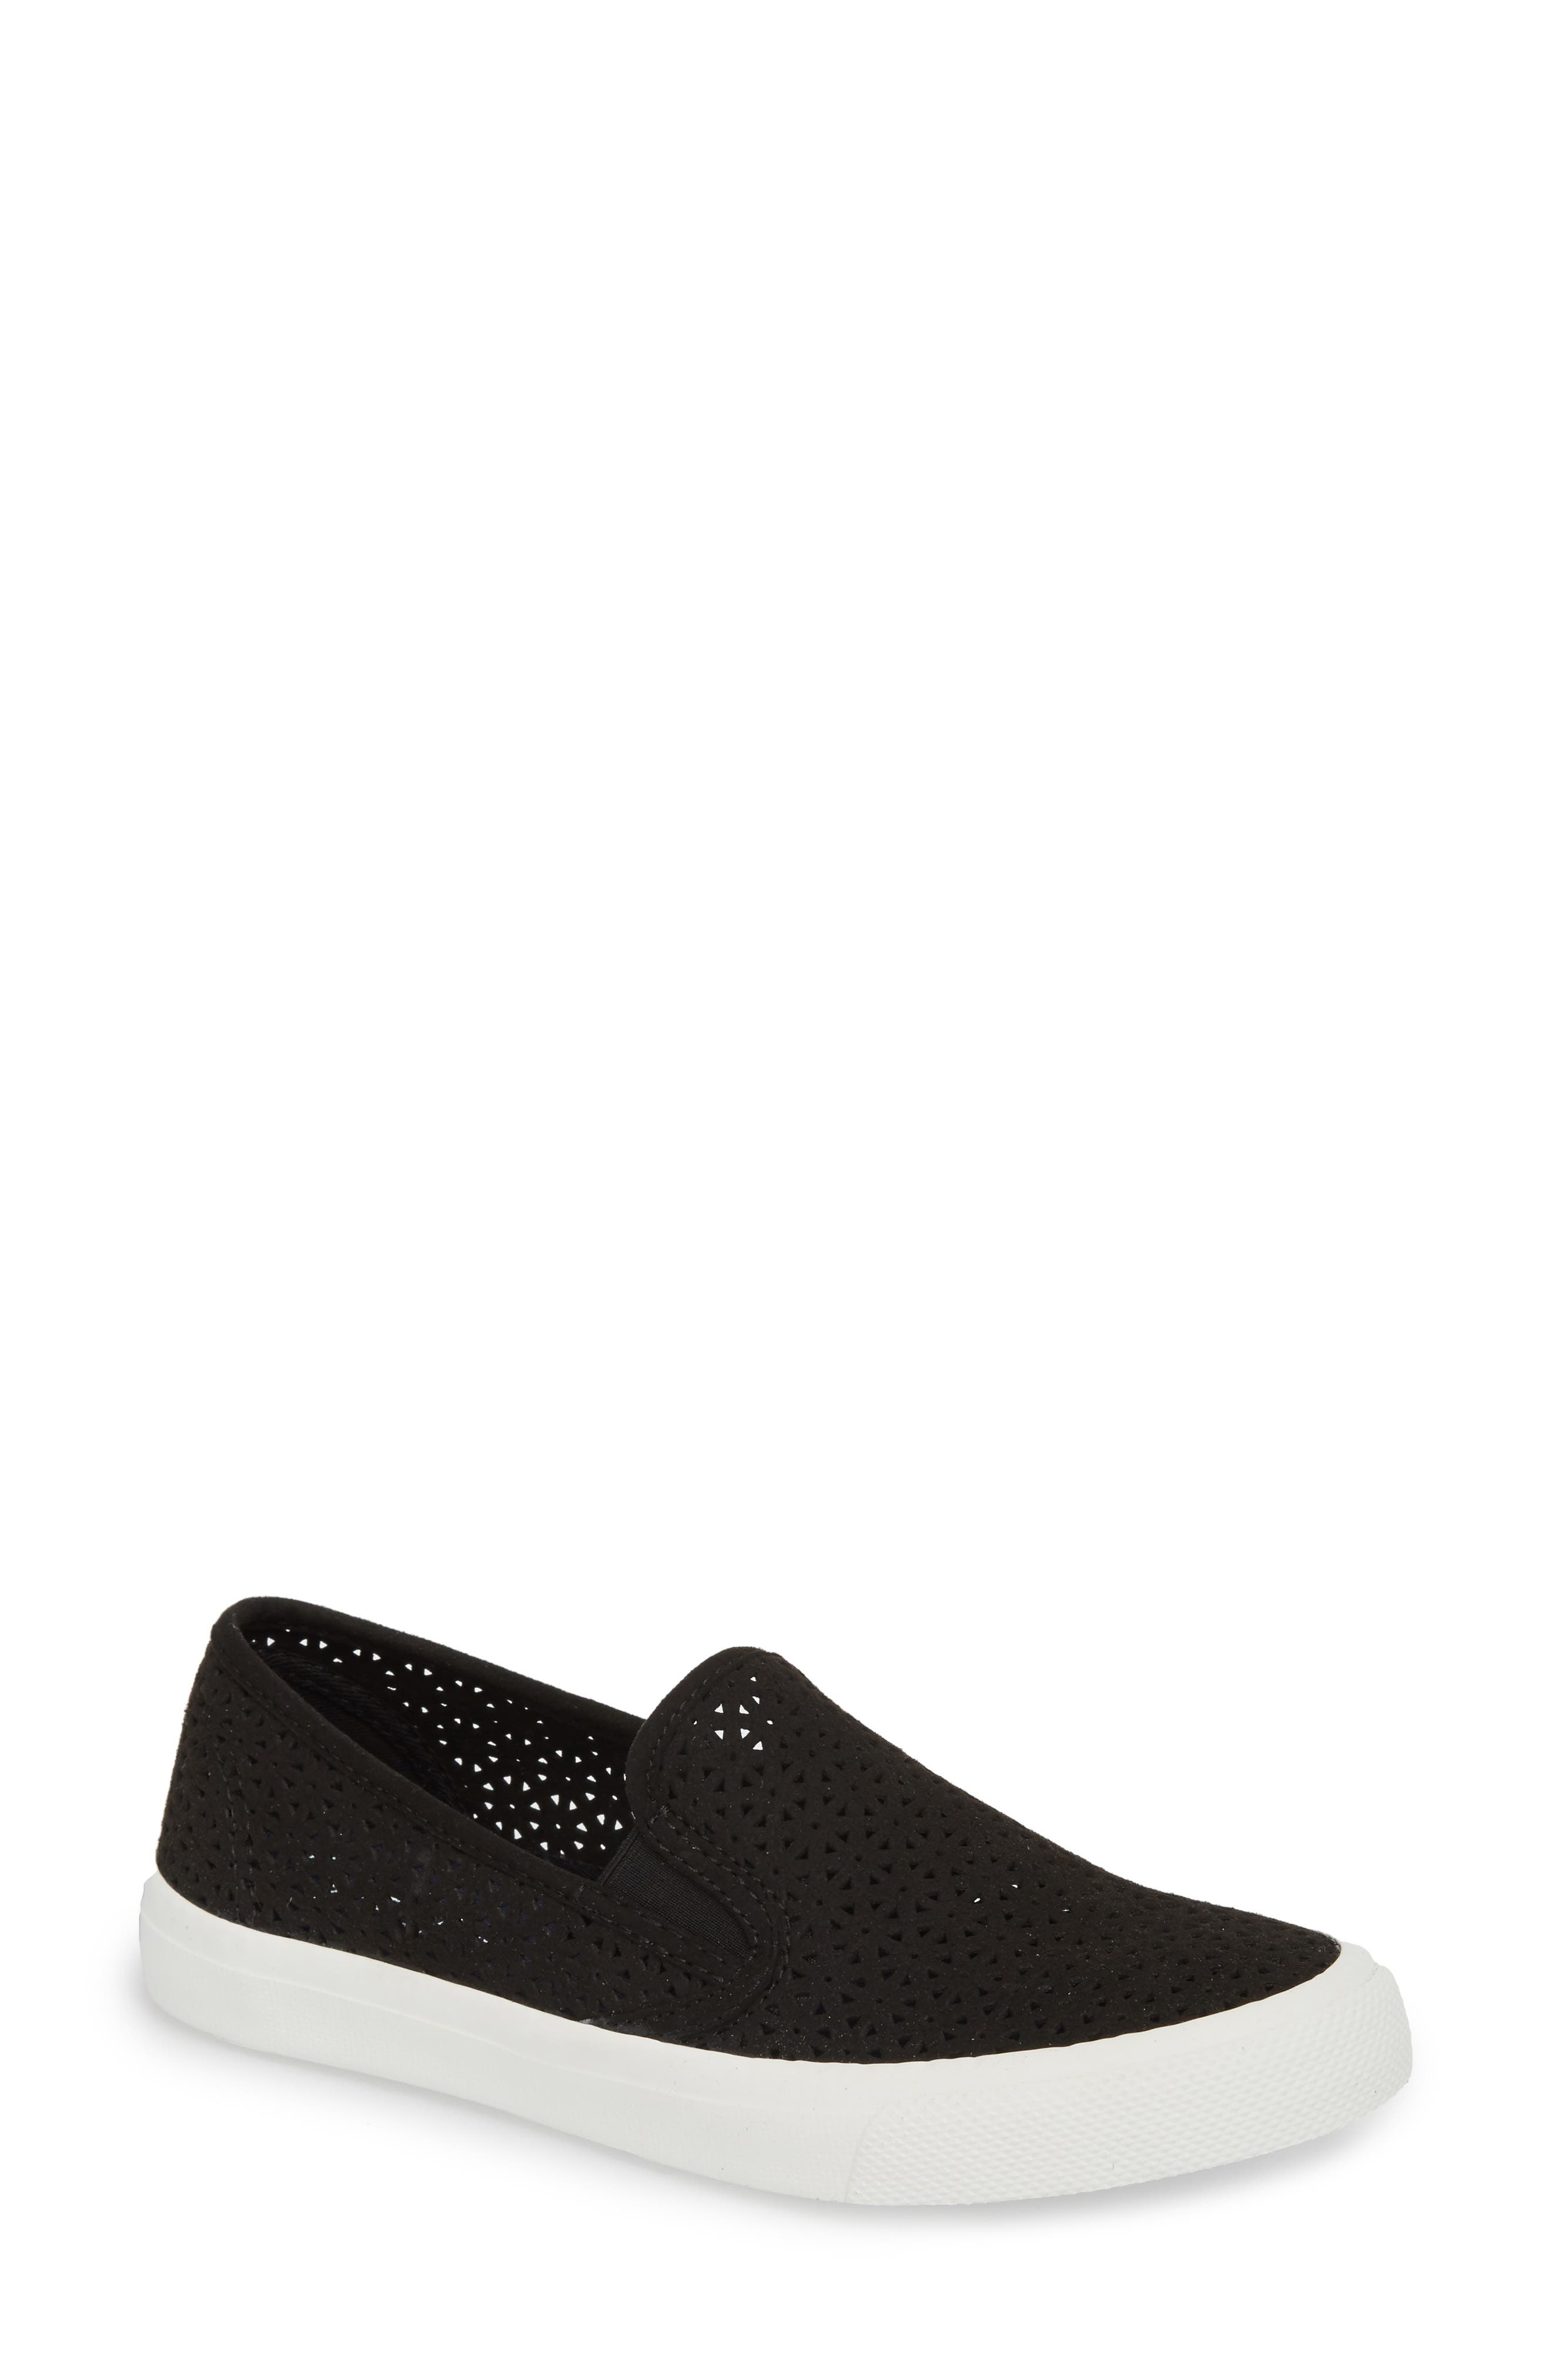 Seaside Nautical Perforated Slip-On Sneaker,                             Main thumbnail 1, color,                             BLACK LEATHER